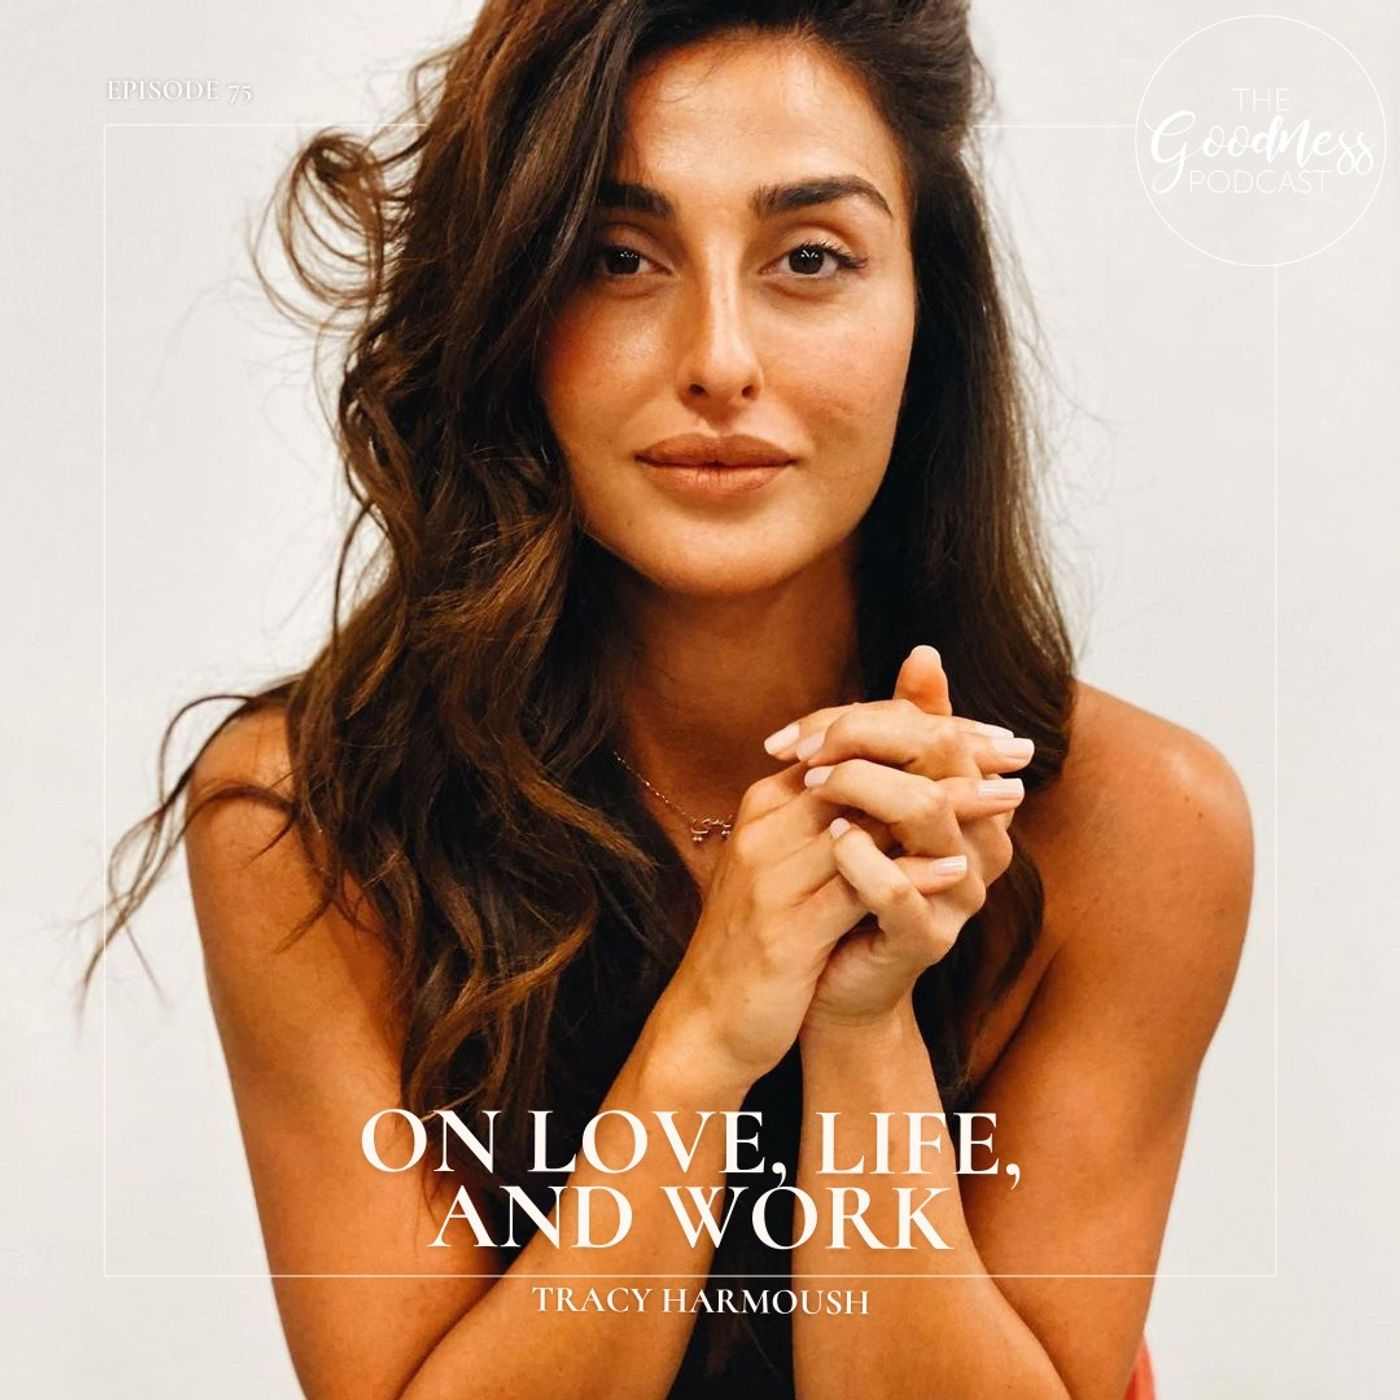 Tracy Harmoush: On Love, Life, and Work